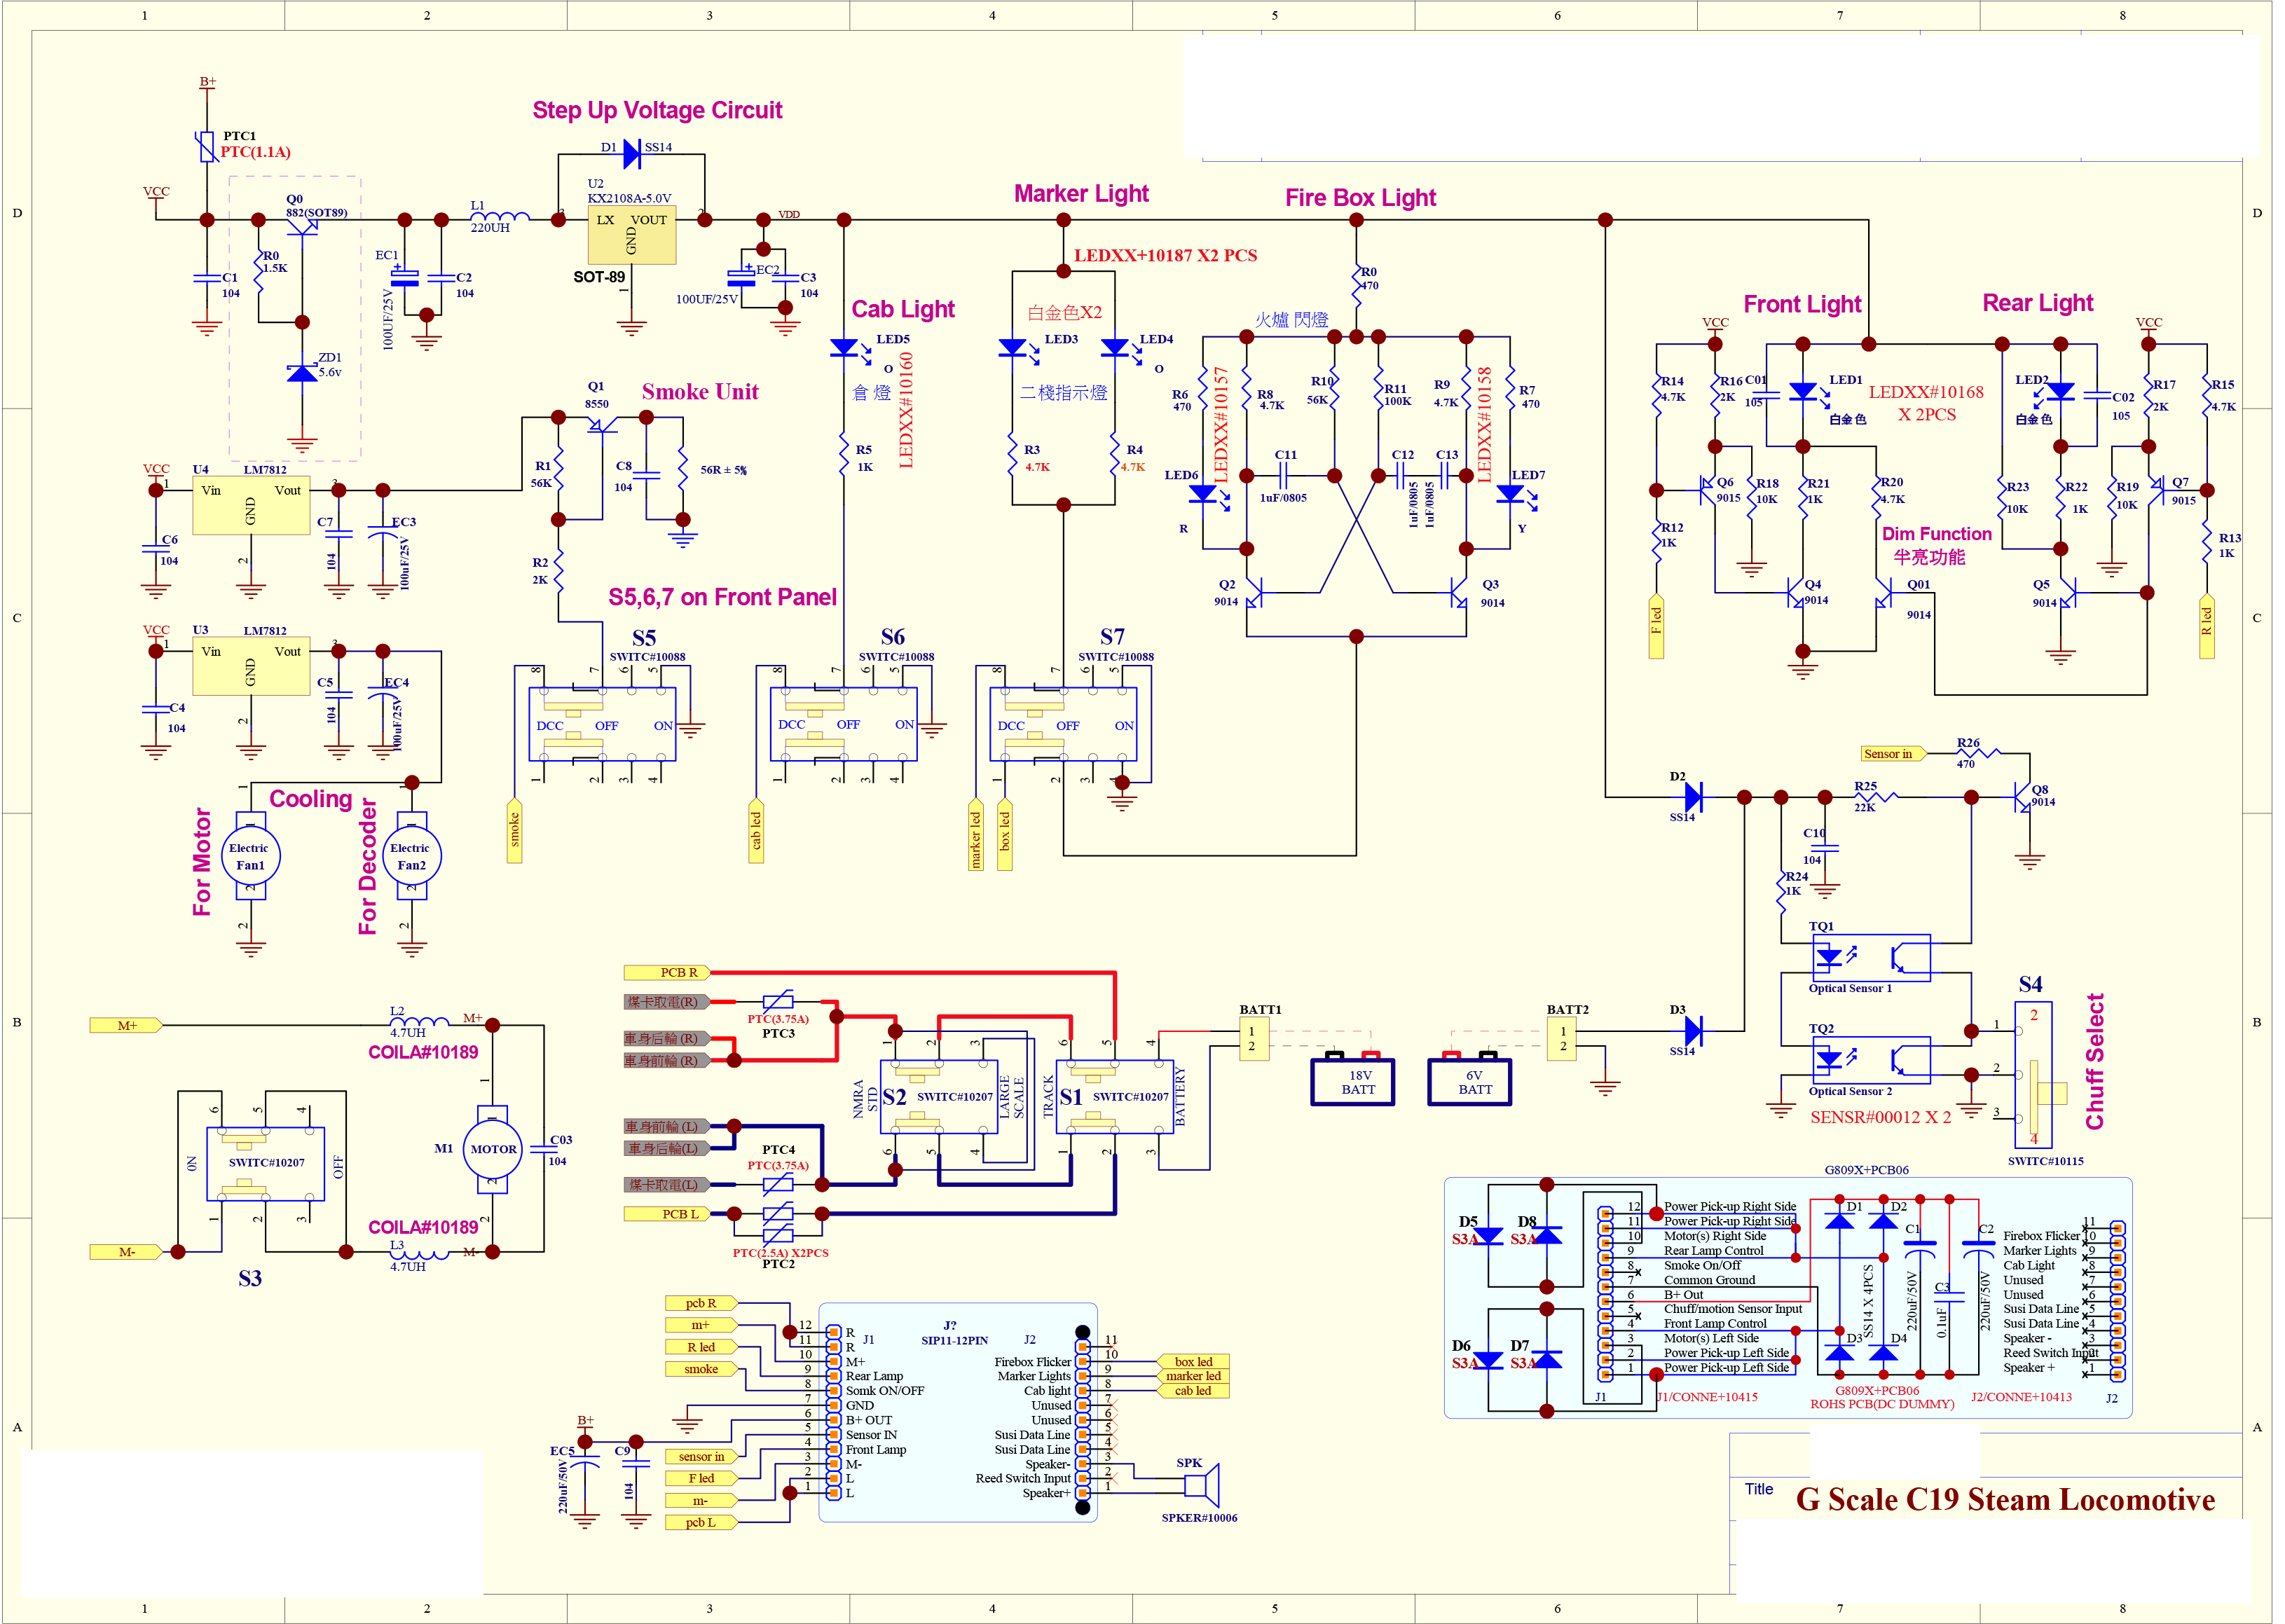 Bachmann Wiring Diagram - My Wiring Diagram on bachmann trains parts schematic, proto 2000 wiring diagrams, bachmann decoder wiring-diagram, diesel engine wiring diagrams, car wiring diagrams, dcc track wiring diagrams, bachmann big haulers parts,